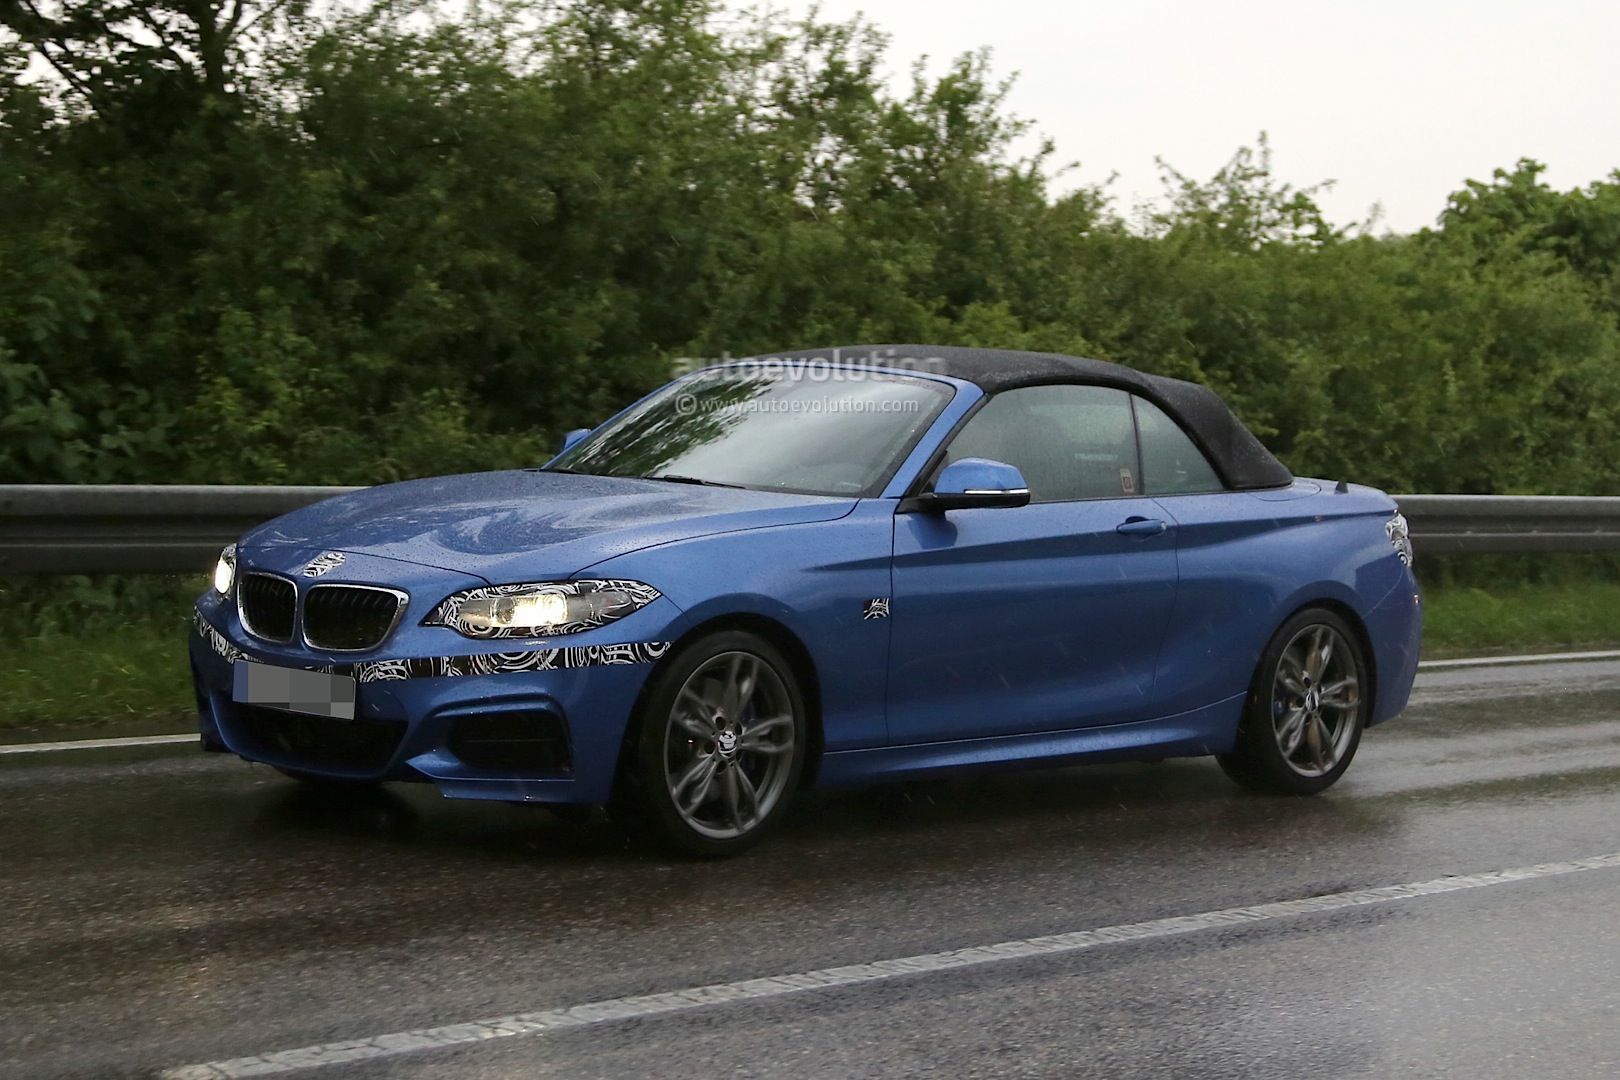 Bmw m235i vs audi s3 battle of the compact performance convertible 4 seaters autoevolution